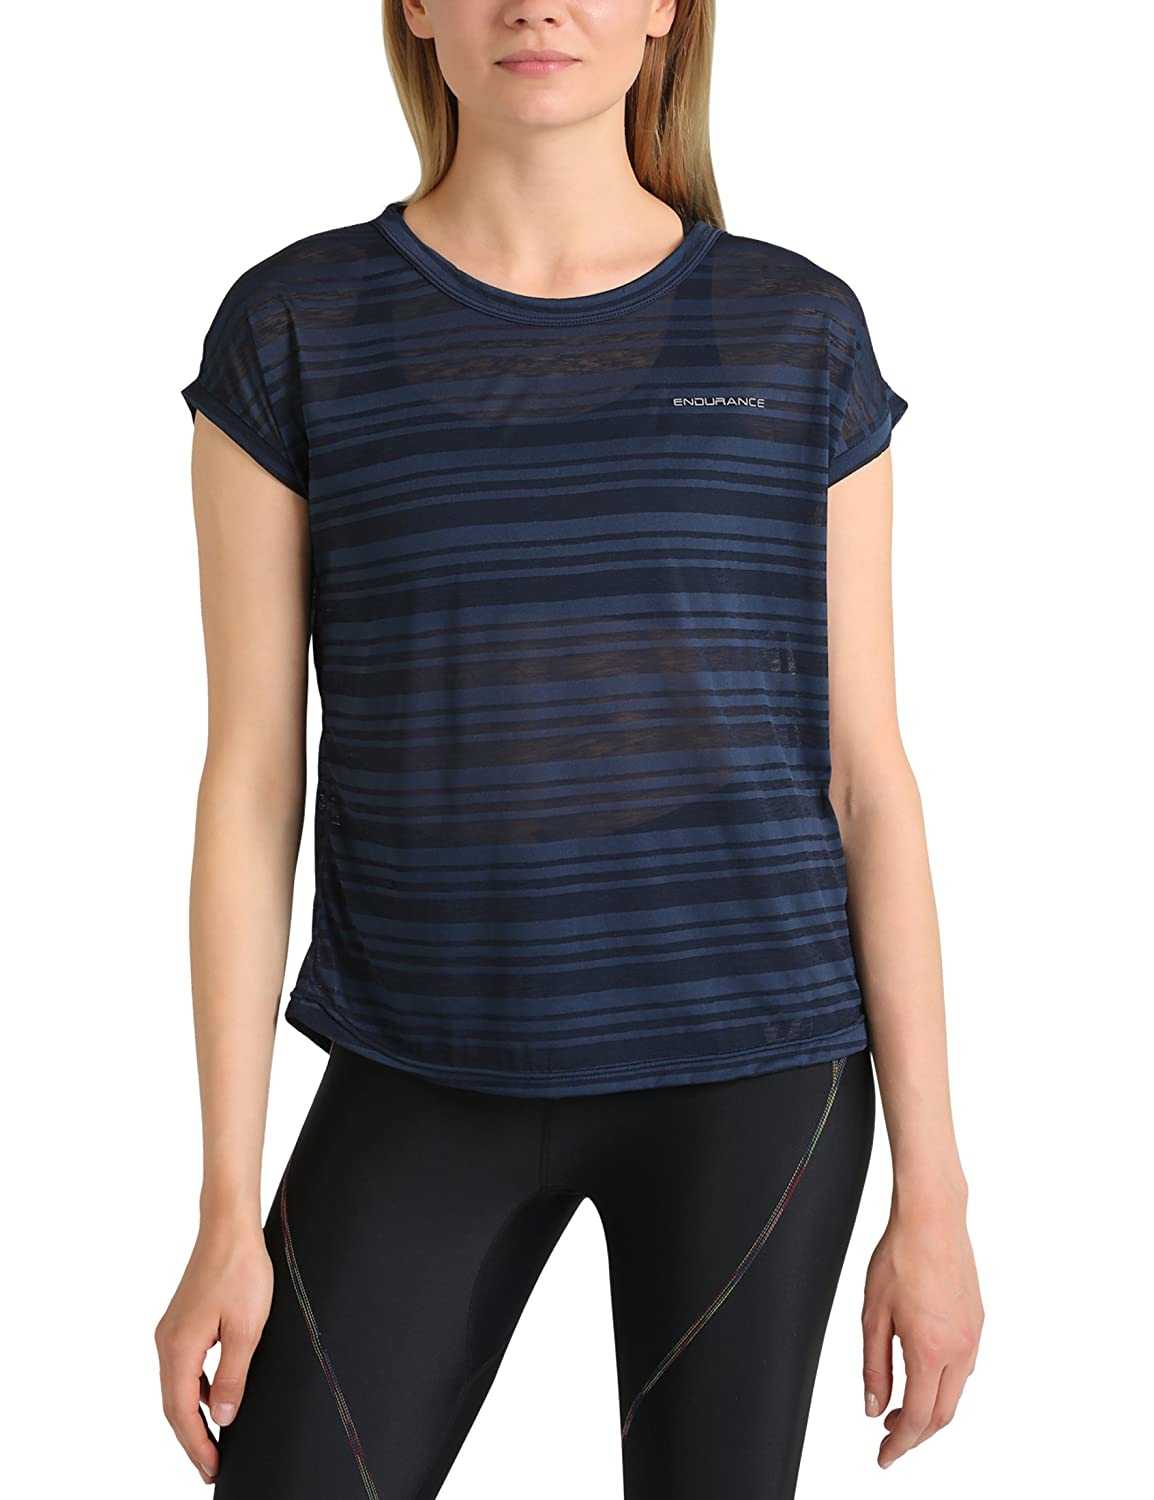 Ultrasport Endurance T-Shirt Skegness for Women – top with a crew neck – striped pattern made of mottled yarn jersey – women's basics – simple essential – single-coloured shirt – sports shirt